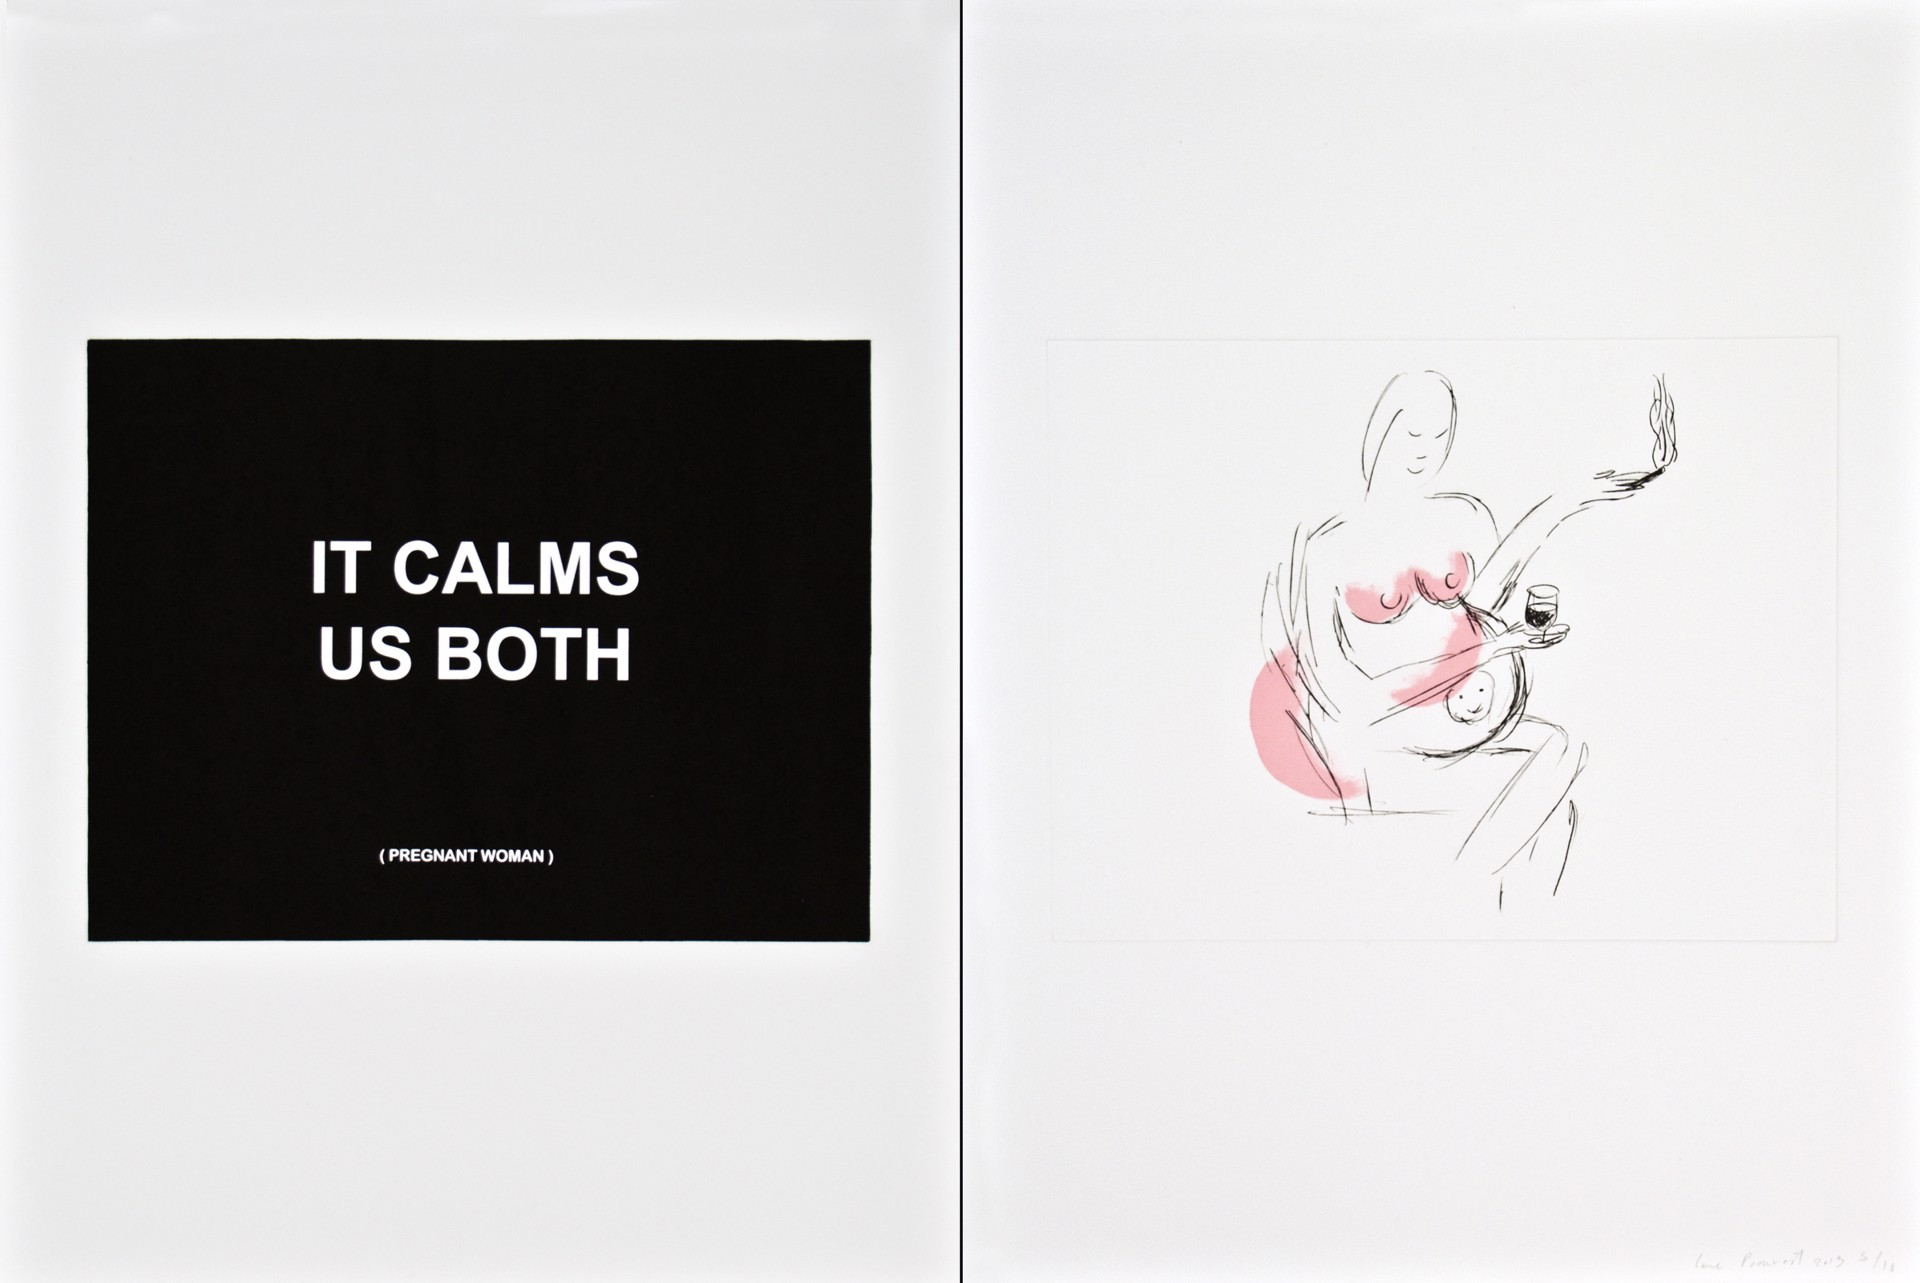 It Calms Us Both 1 by Laure Prouvost